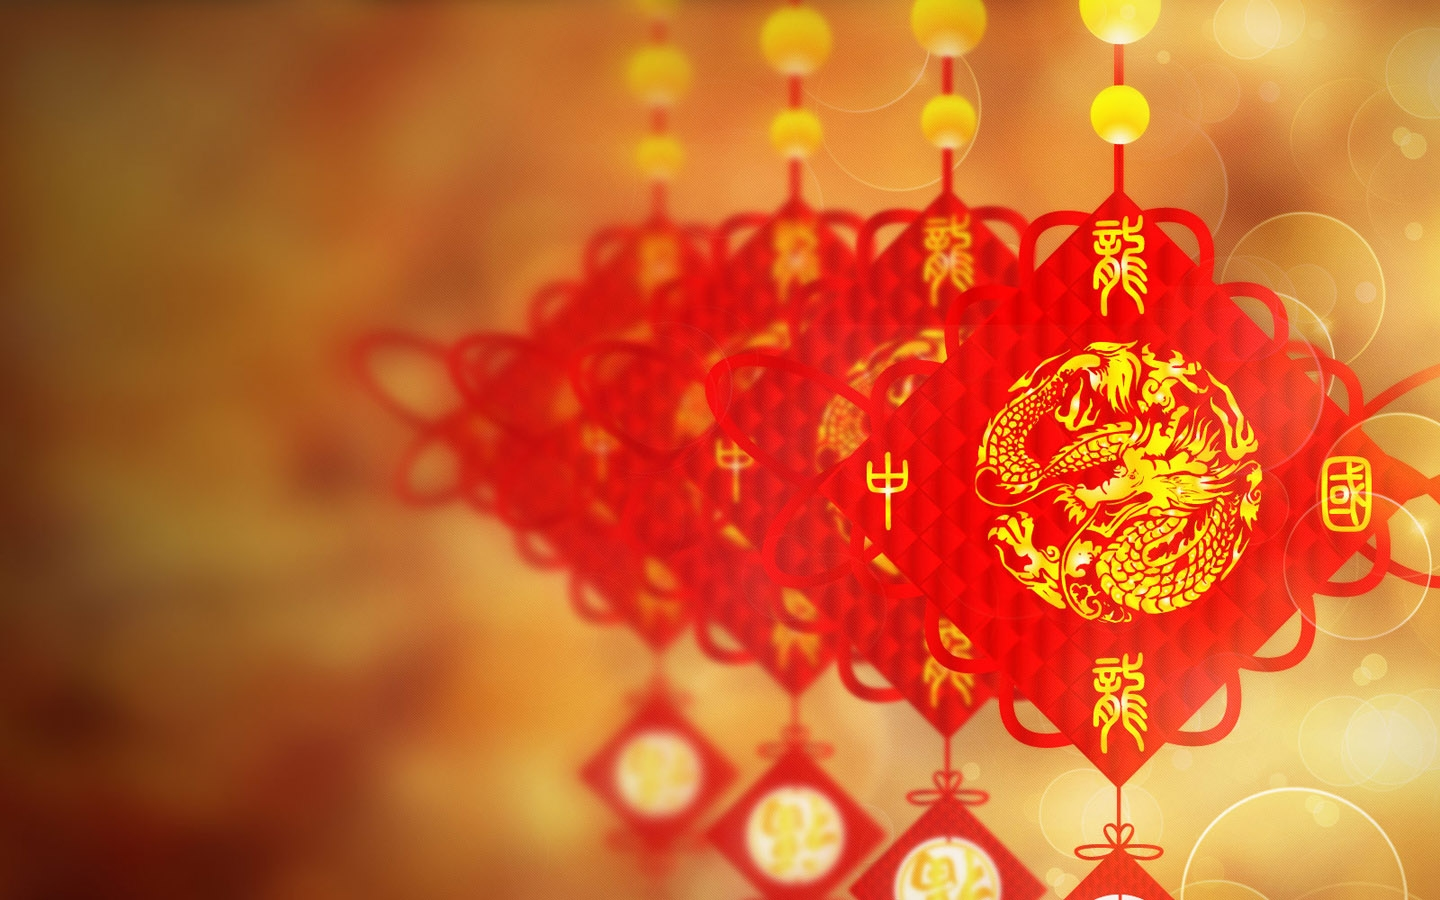 chinese backgrounds - wallpapersafari, Powerpoint templates